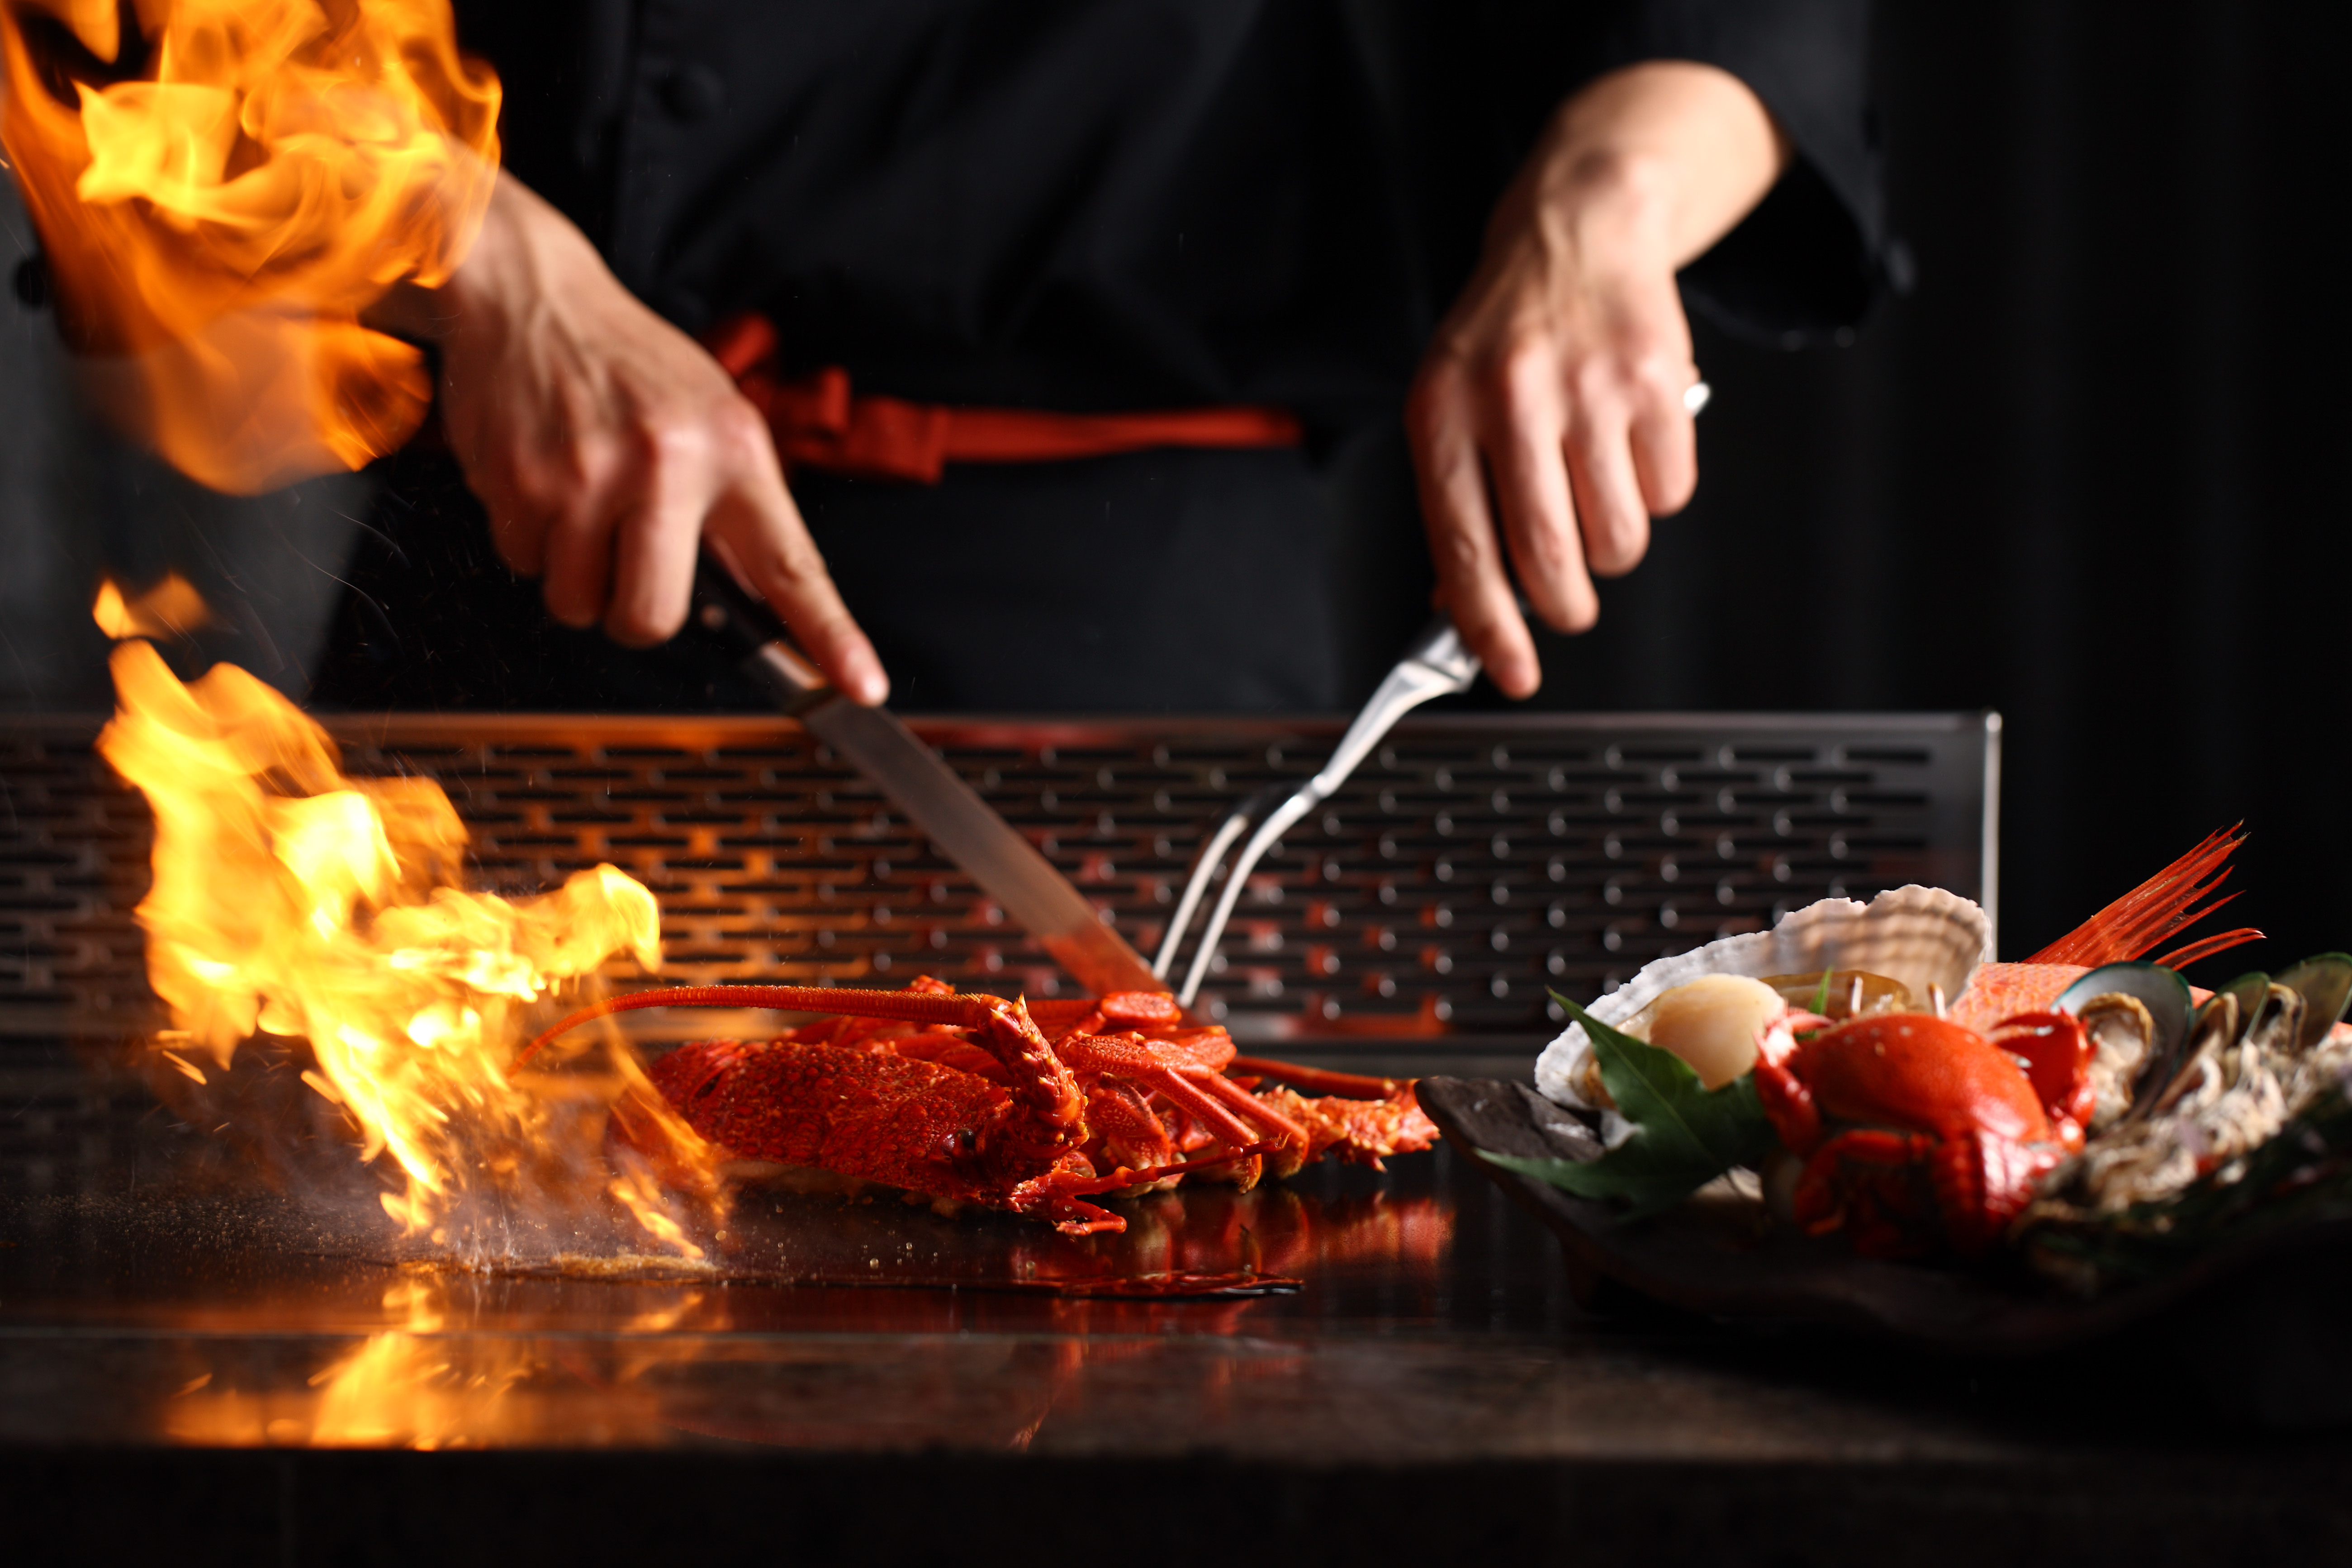 Prime Cut: The Westin Beijing Chaoyang's Mai takes teppenyaki to a new level